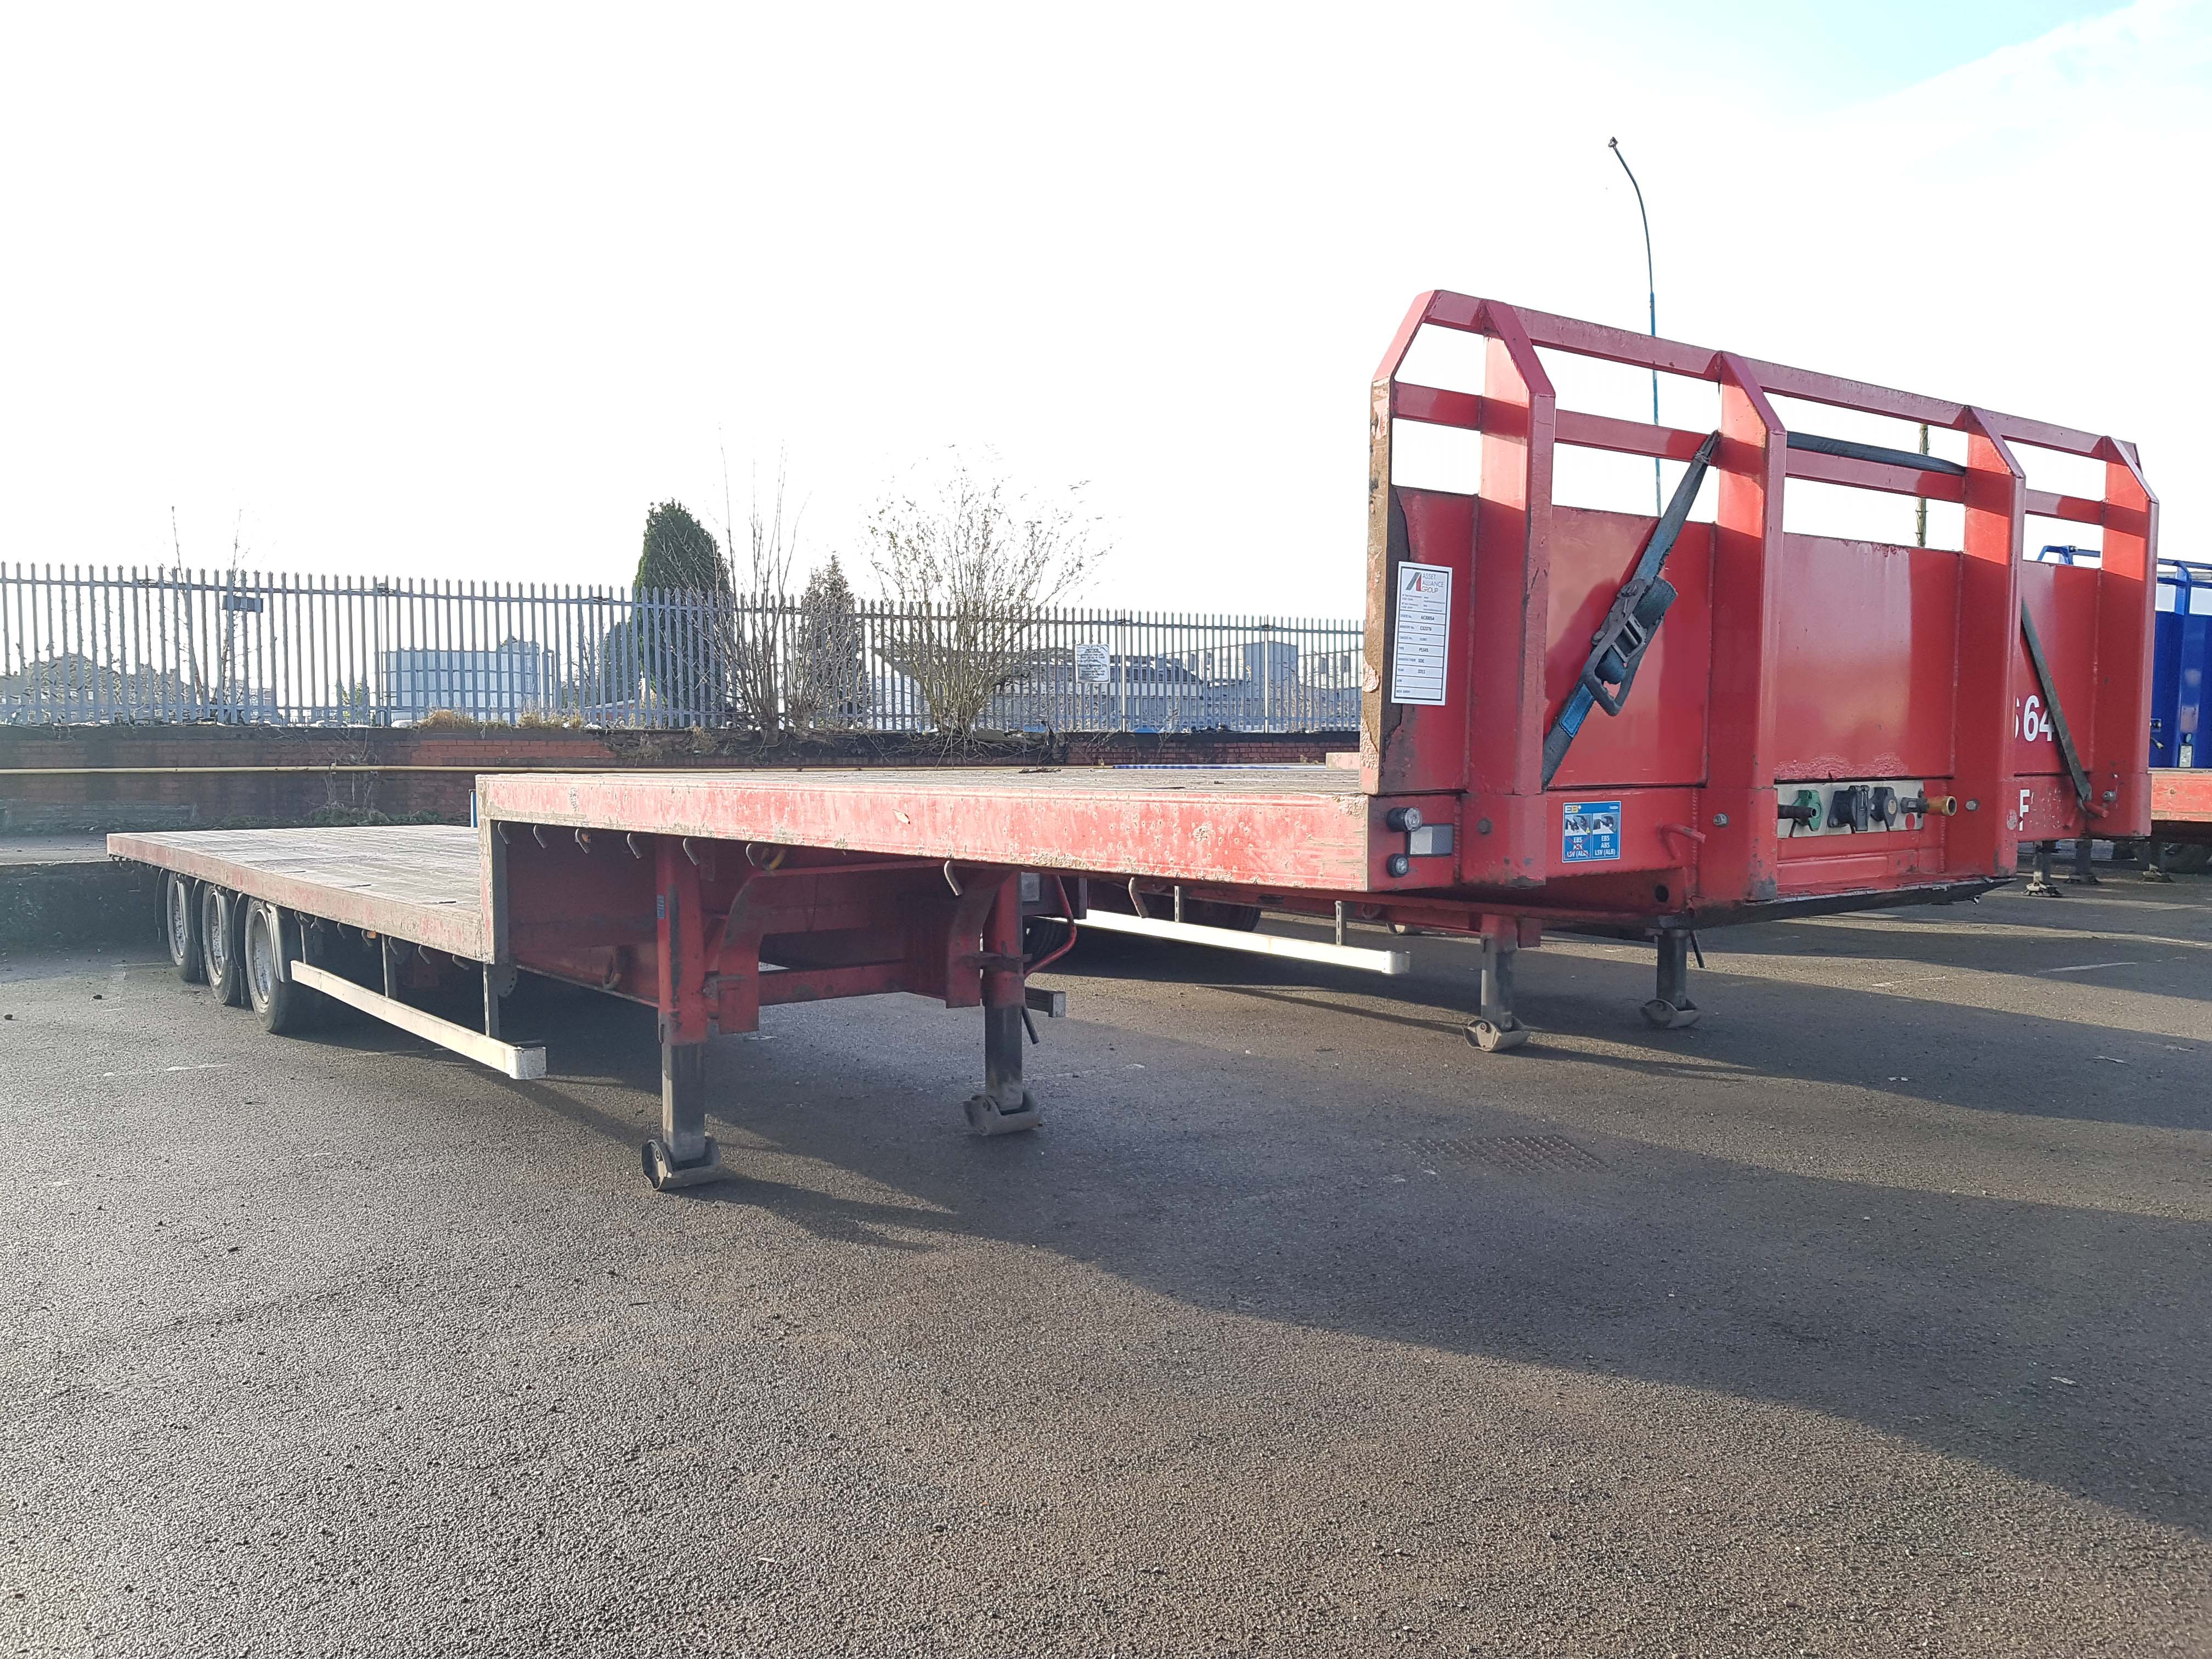 2011 SDC 13.6m Step Frame Original Build Flat Bed. BPW drum brake axles, 265/70r19.5 wheels and tyres, kerruin floor, rope hooks and lashing rings. Bed length 9.29m, neck length 4.26m, step 0.5m. Choice of 2.